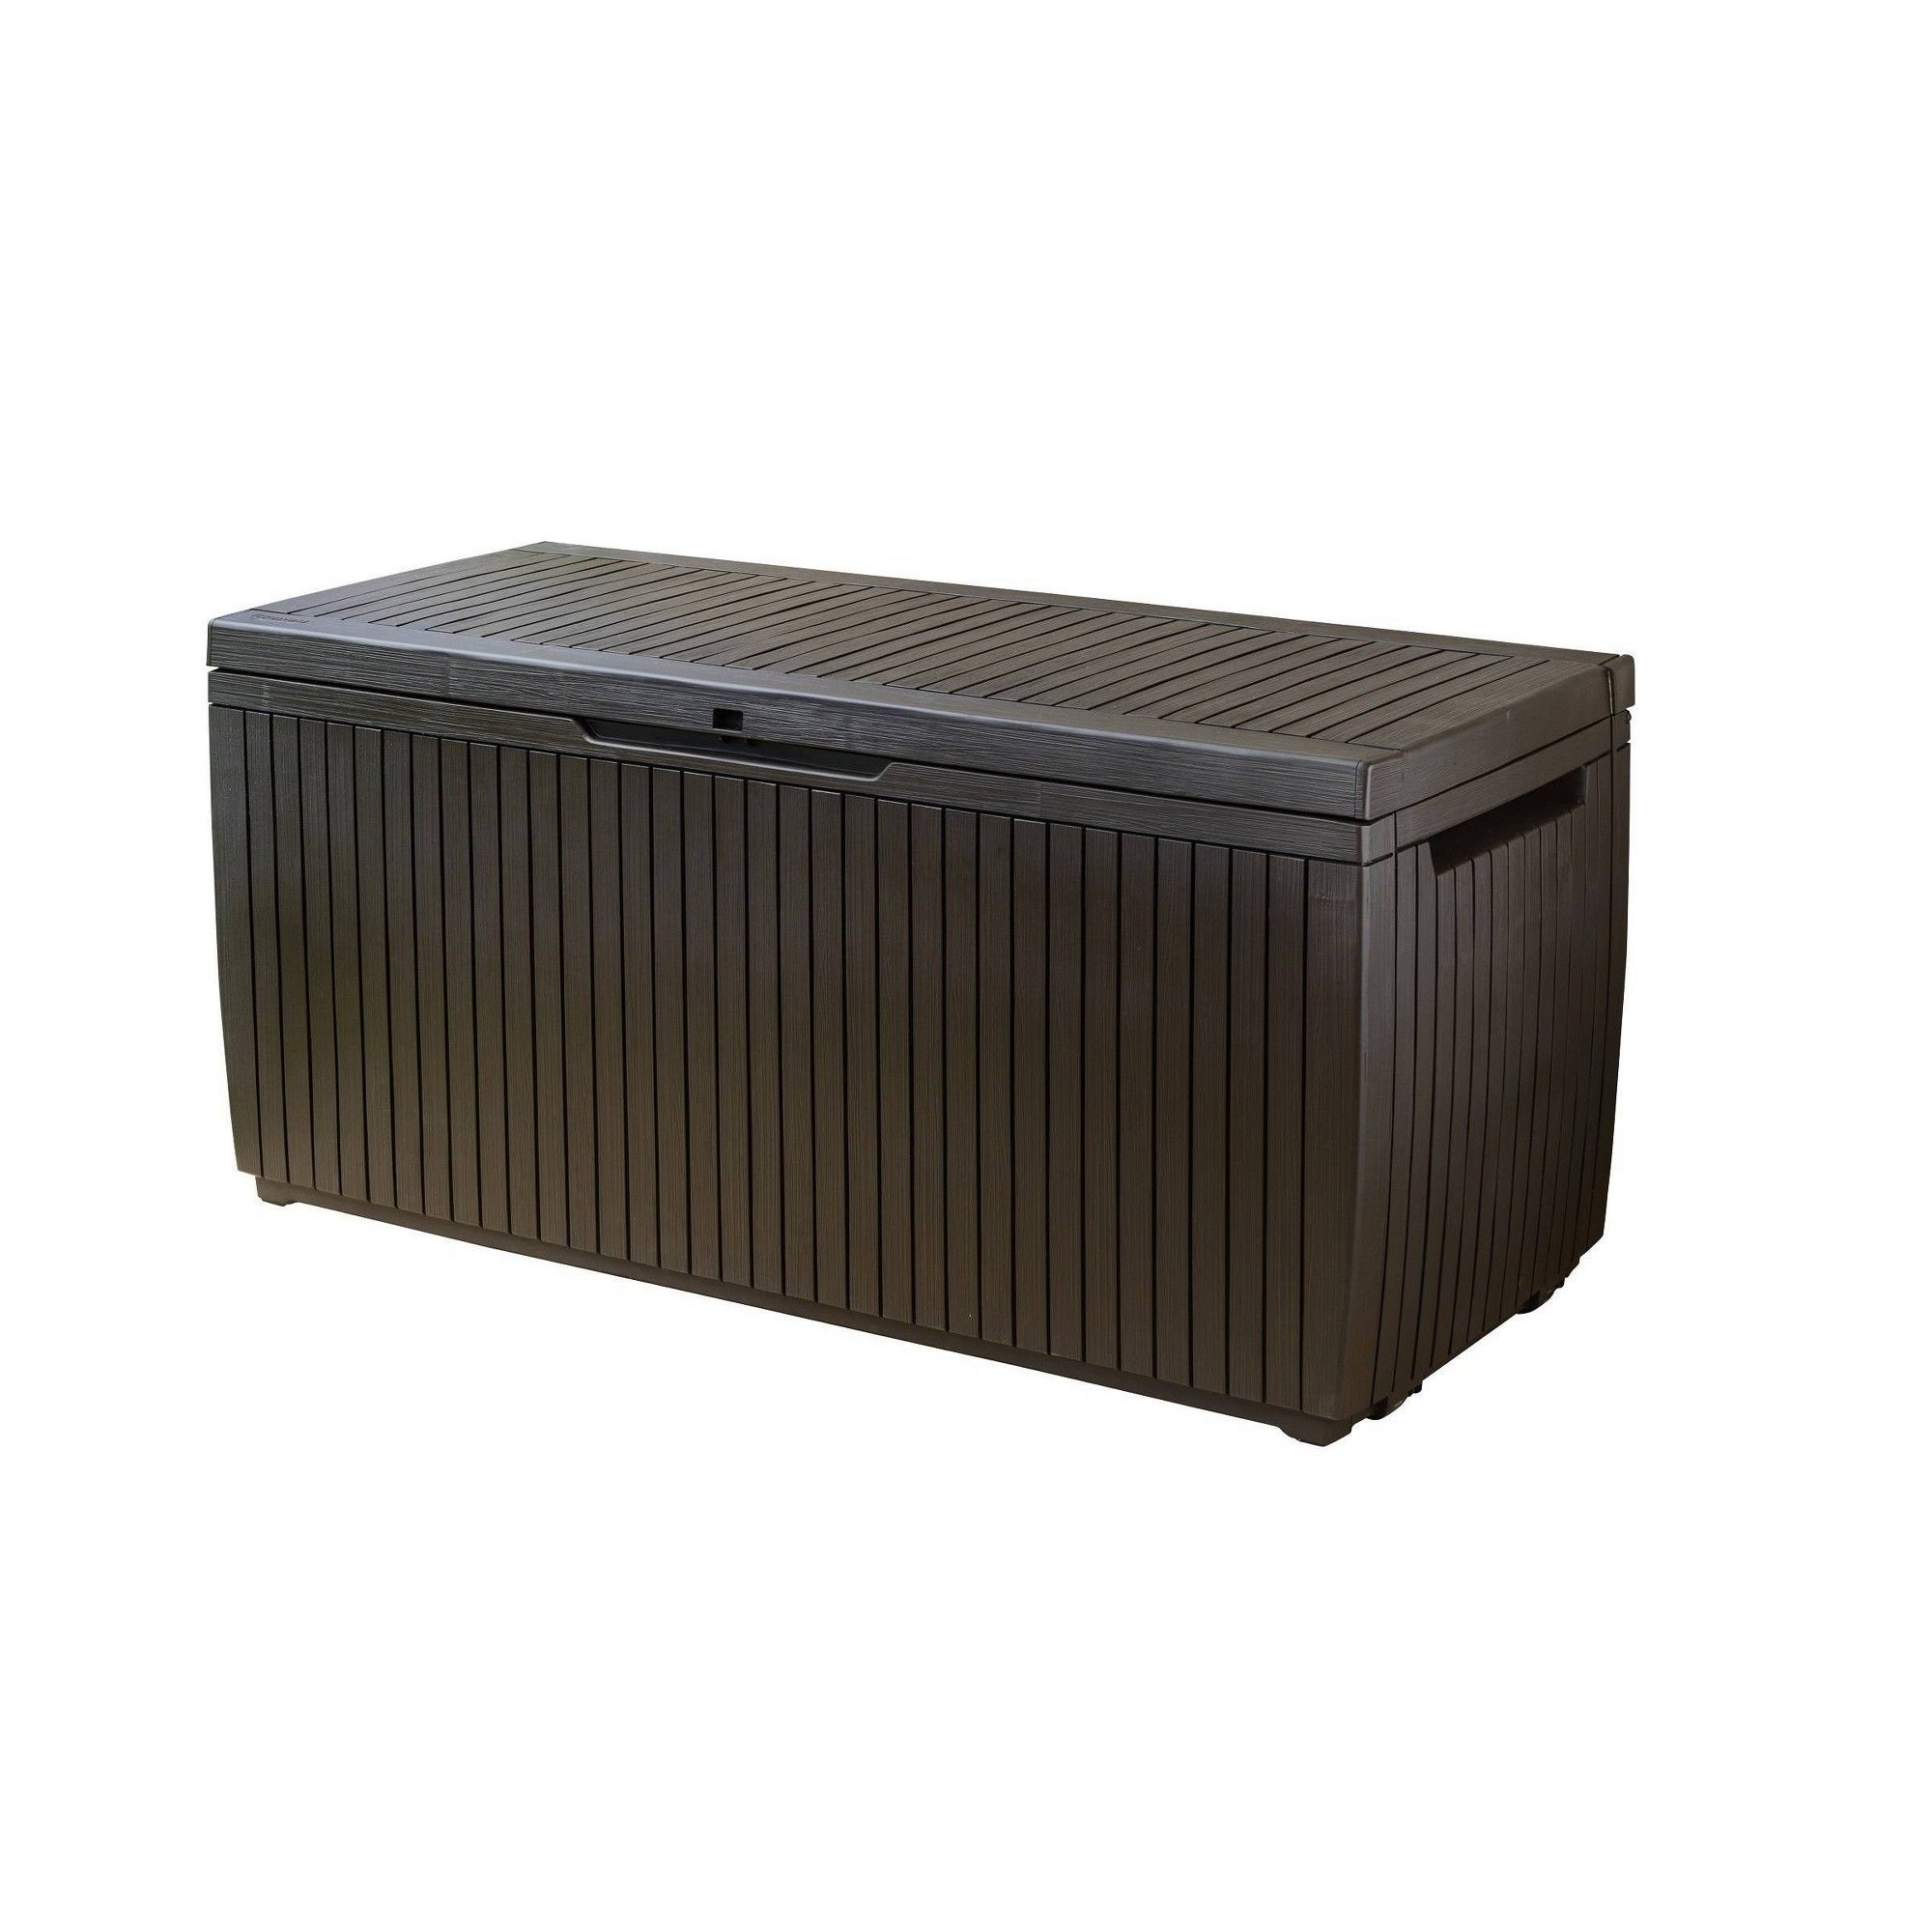 80 Gal Springwood Outdoor Resin Storage Deck Box Brown Keter Patio Storage Patio Storage Bench Deck Box